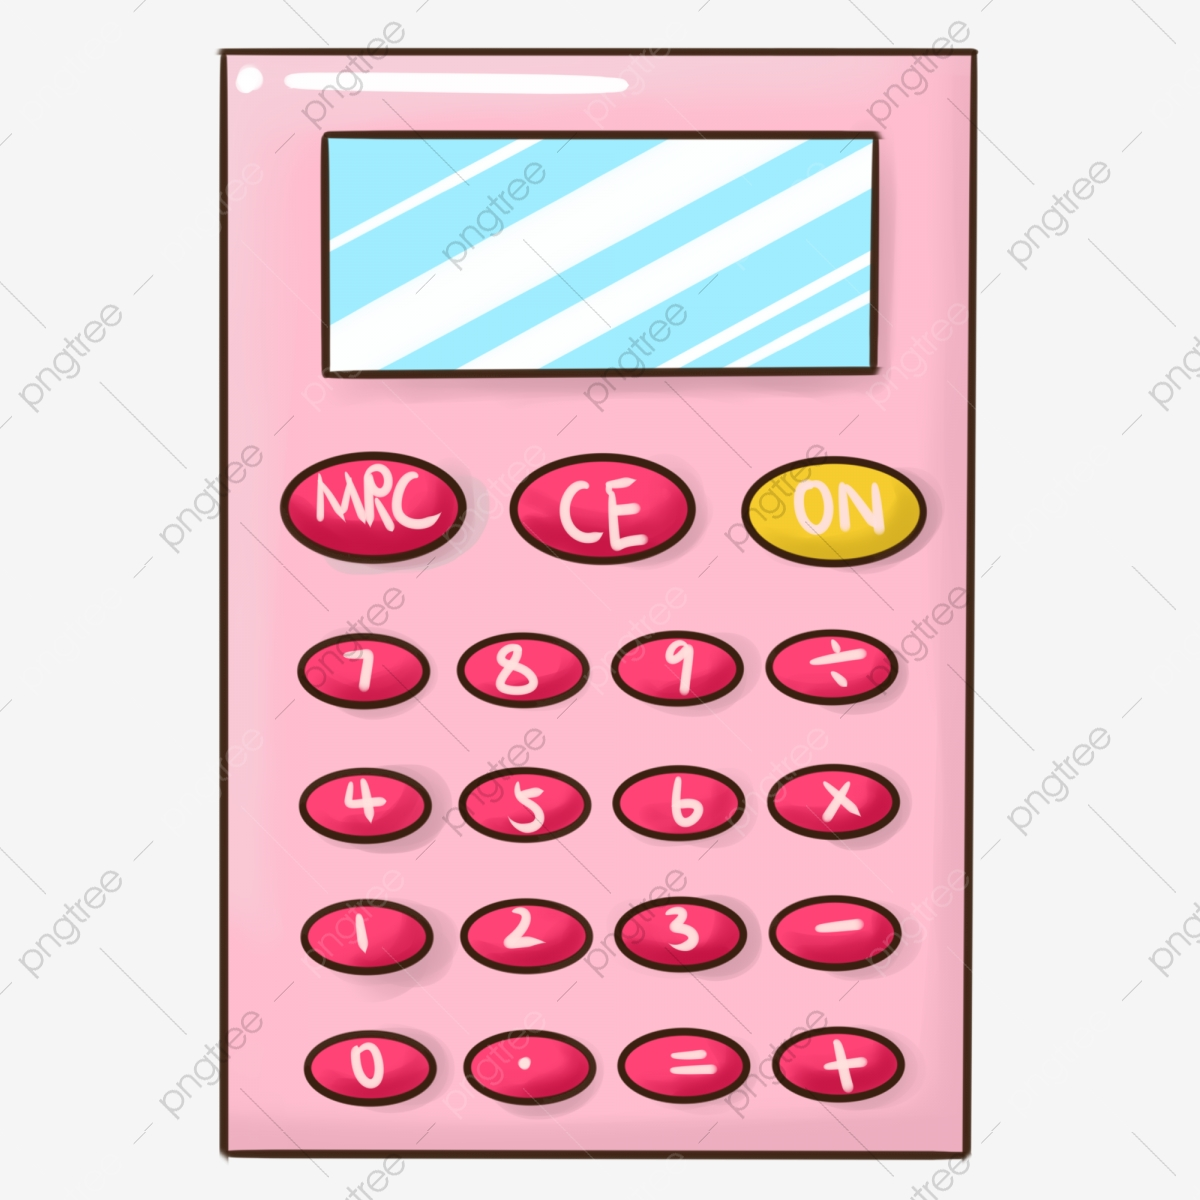 Calculator clipart pink. Red keyboard cartoon illustration